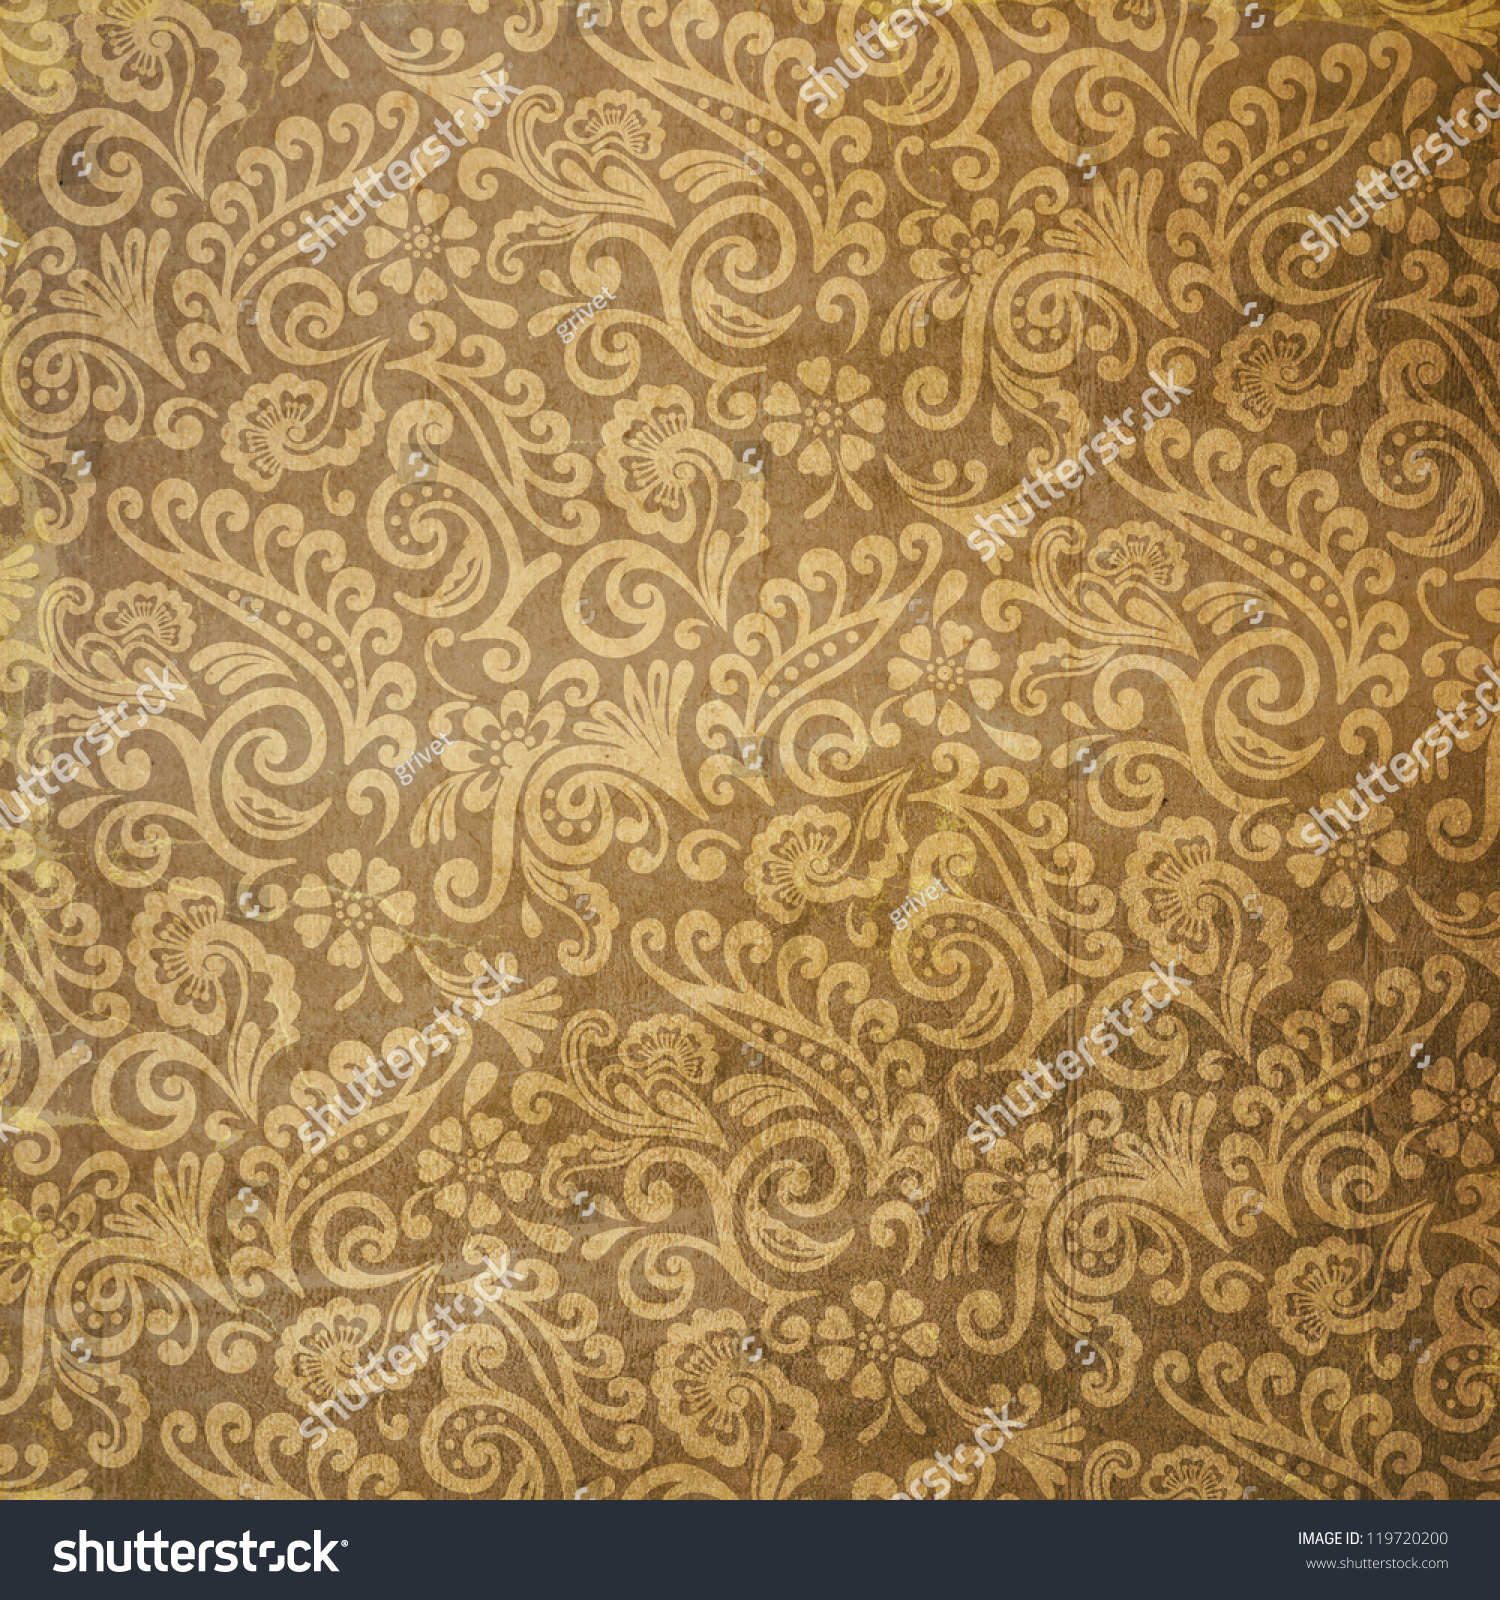 Used Vintage Victorian Floral Wallpaper Background Stock